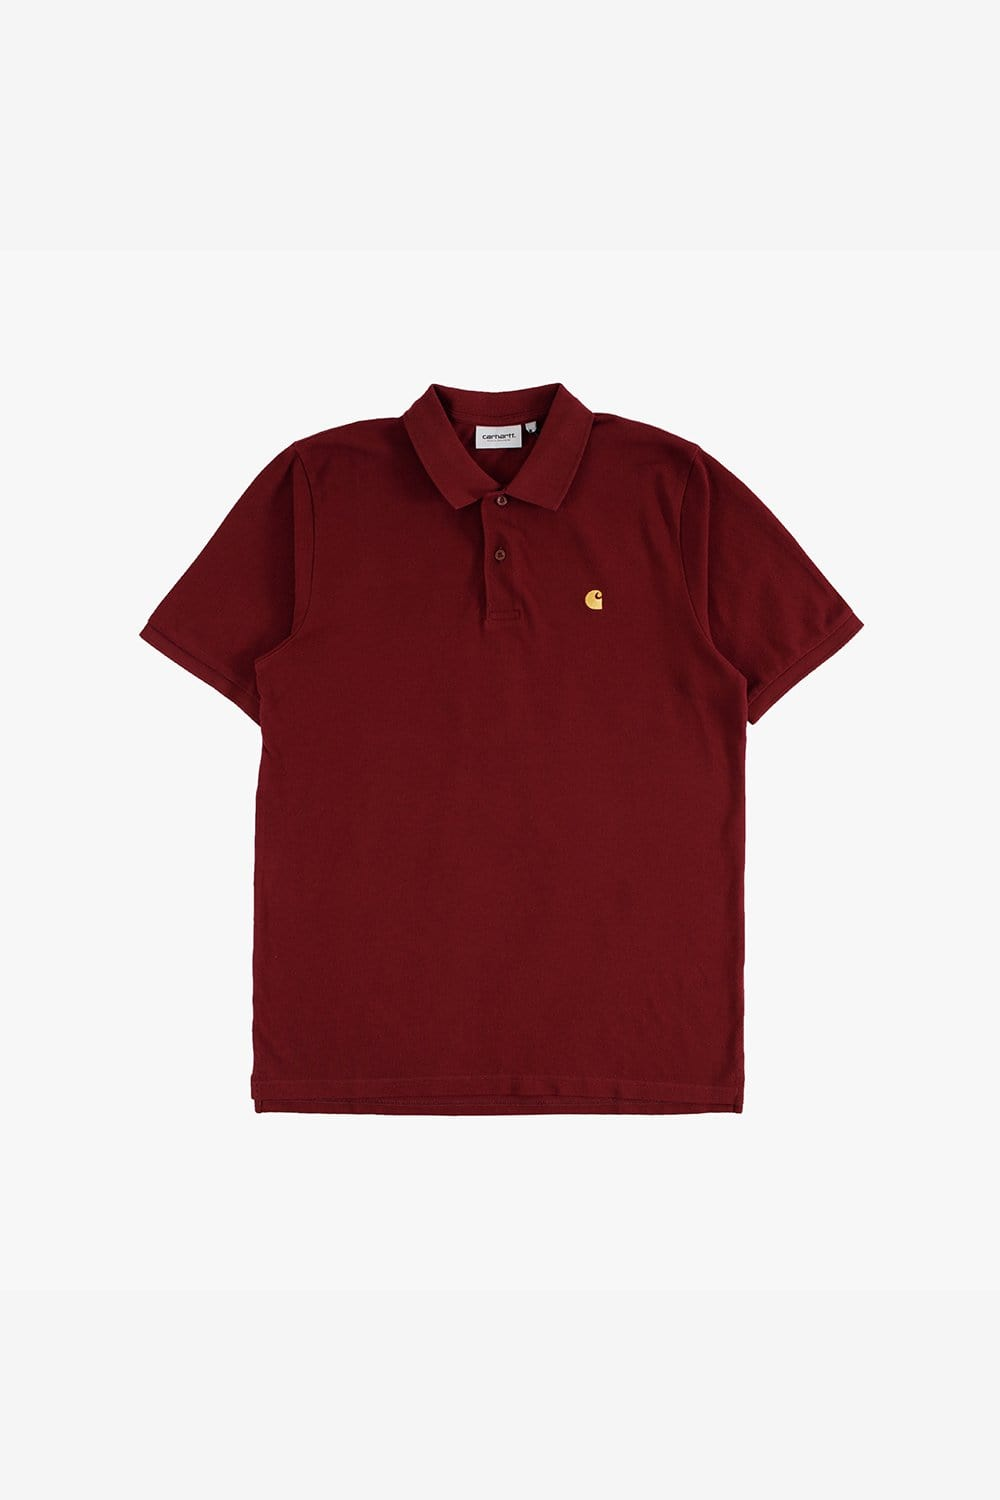 Carhartt WIP Apparel M Chase Pique Polo Shirt